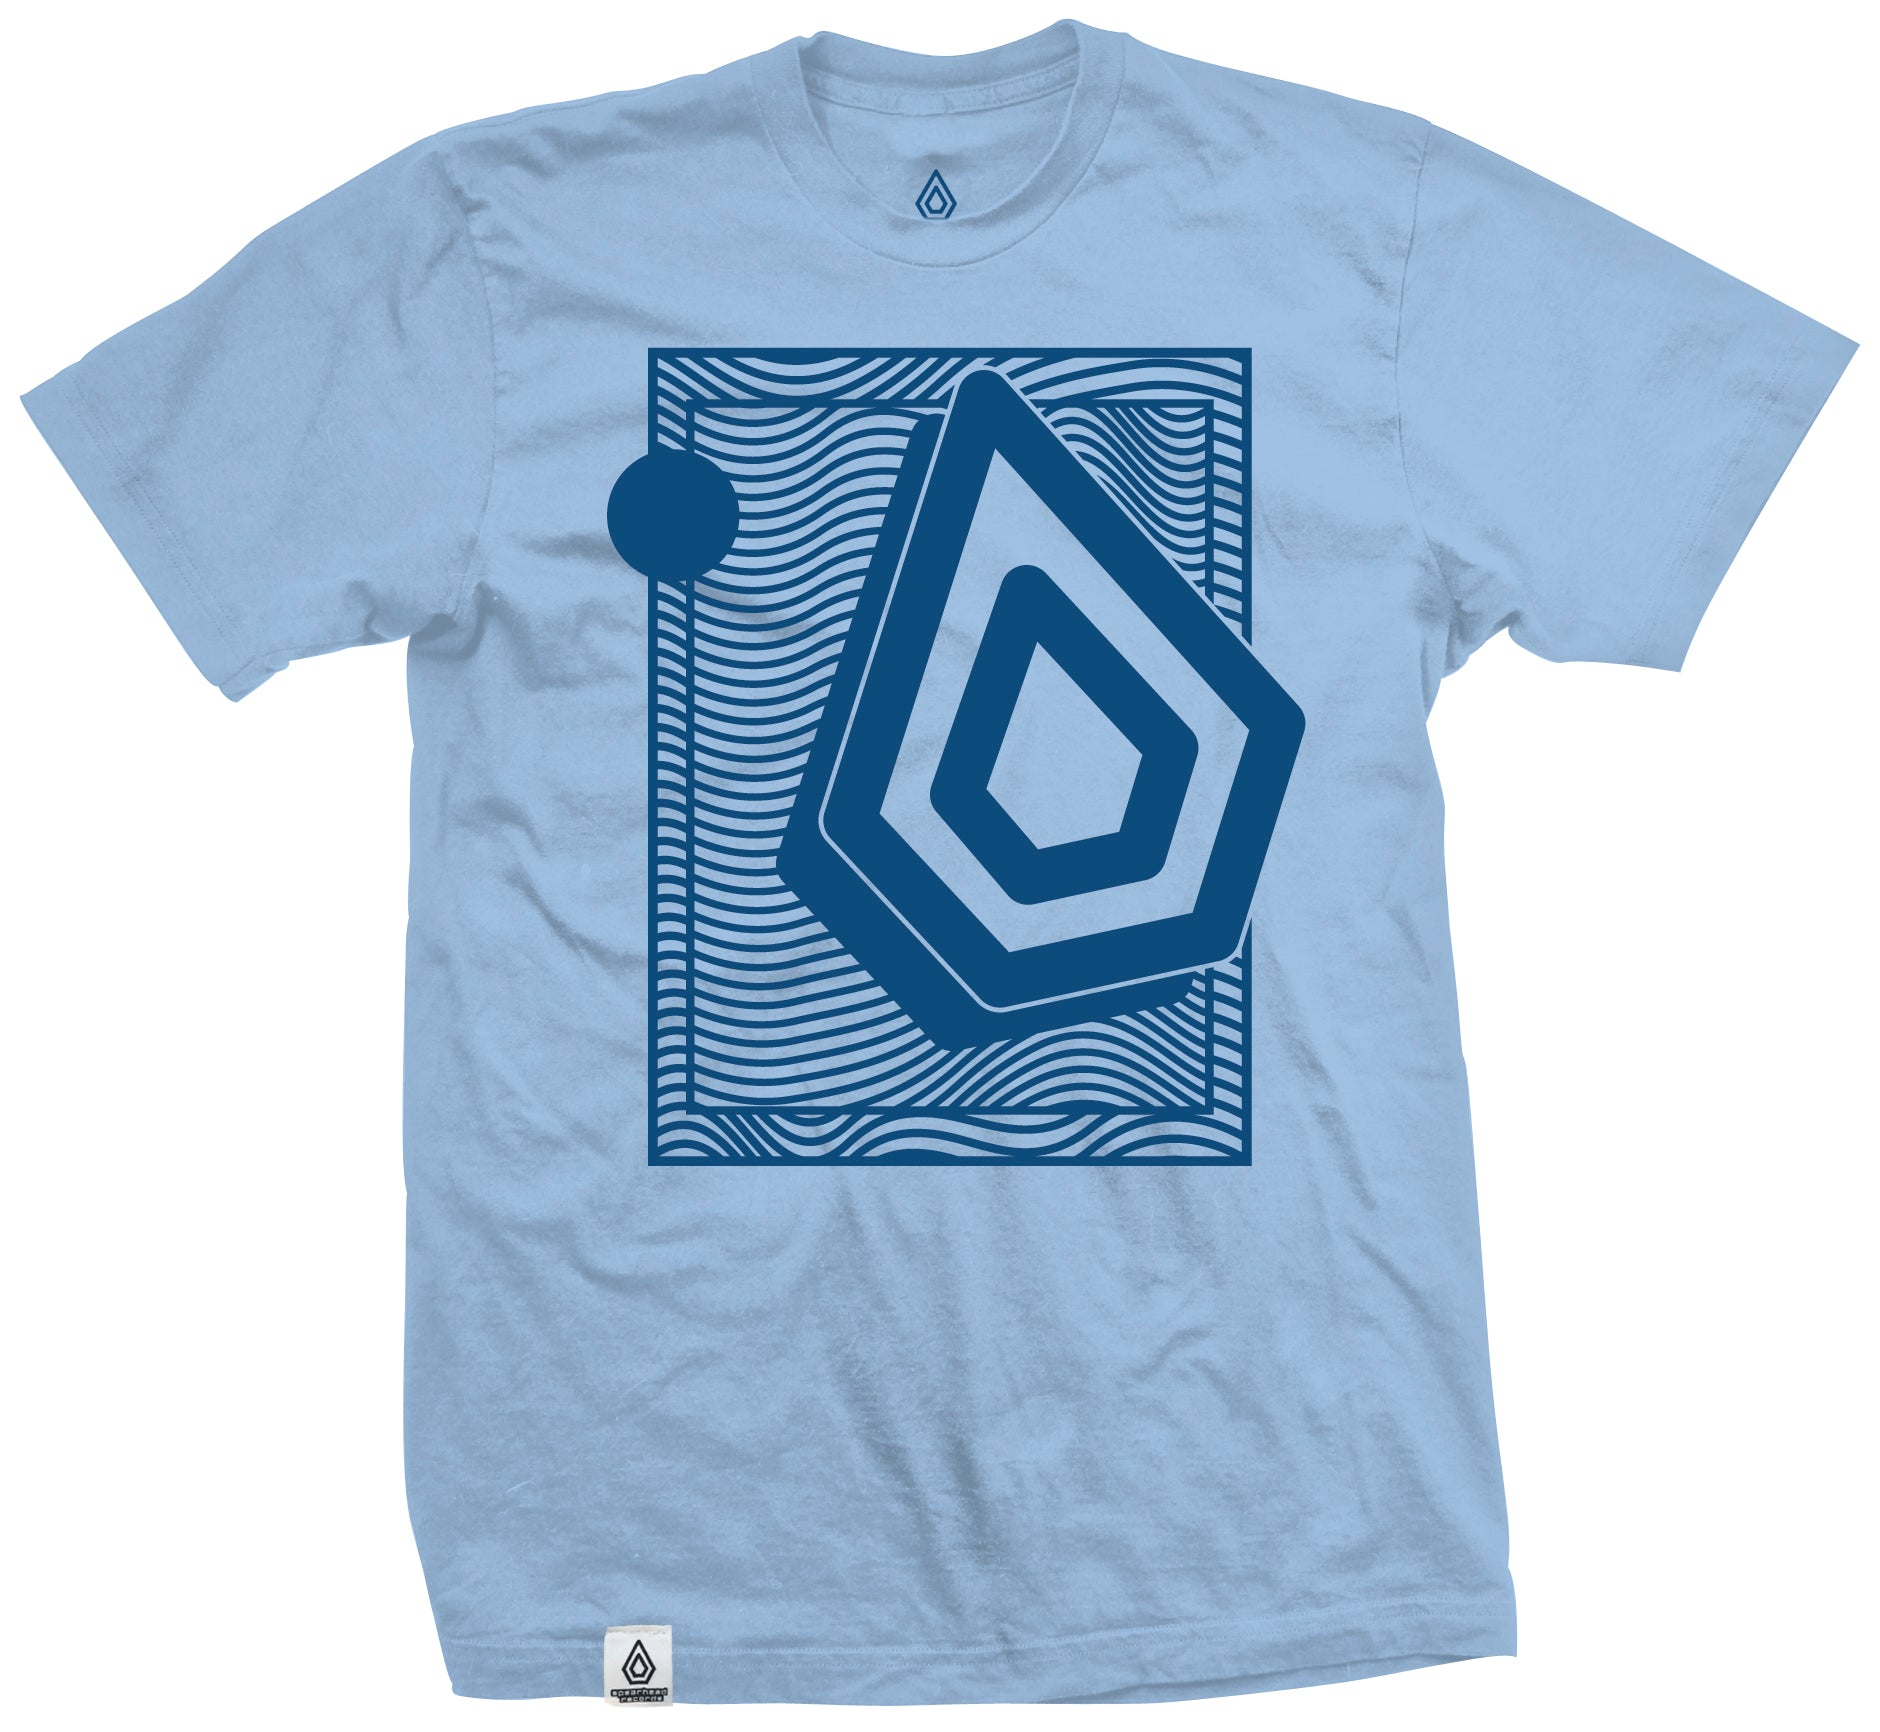 Spearhead 'Wavey' Tee - Blue